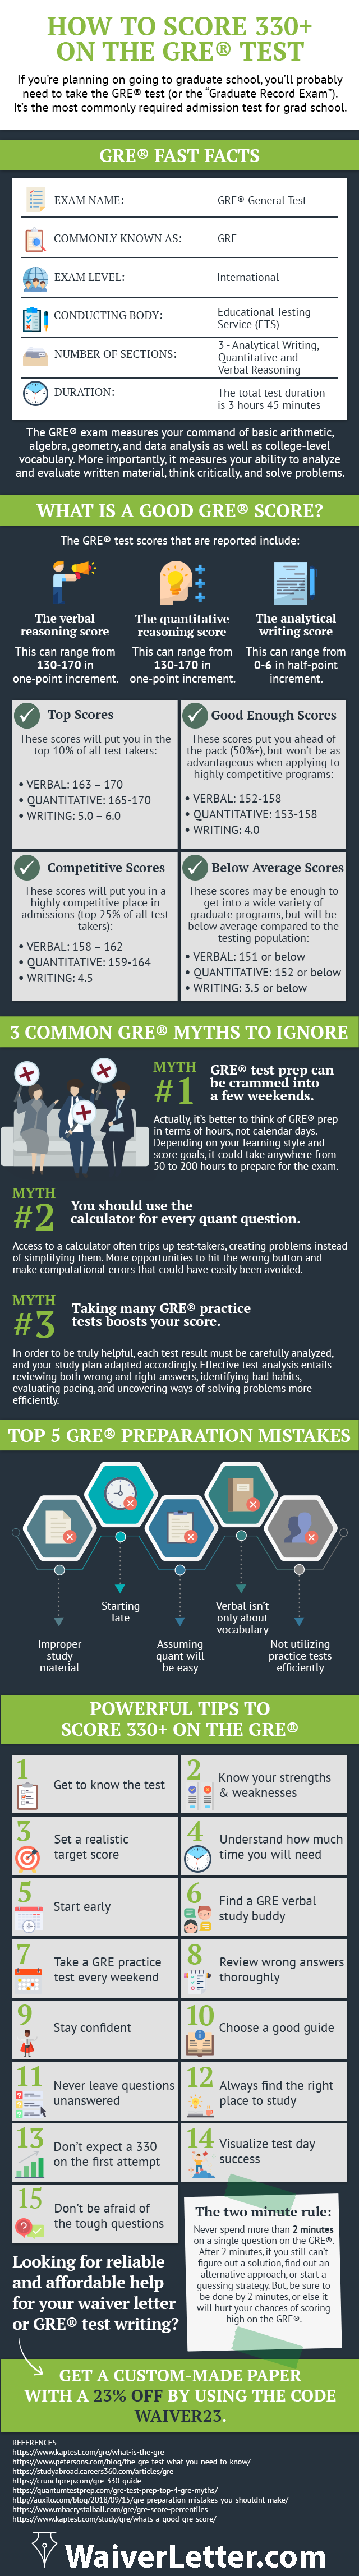 What to write about GRE Public Health withdrawal #infographic